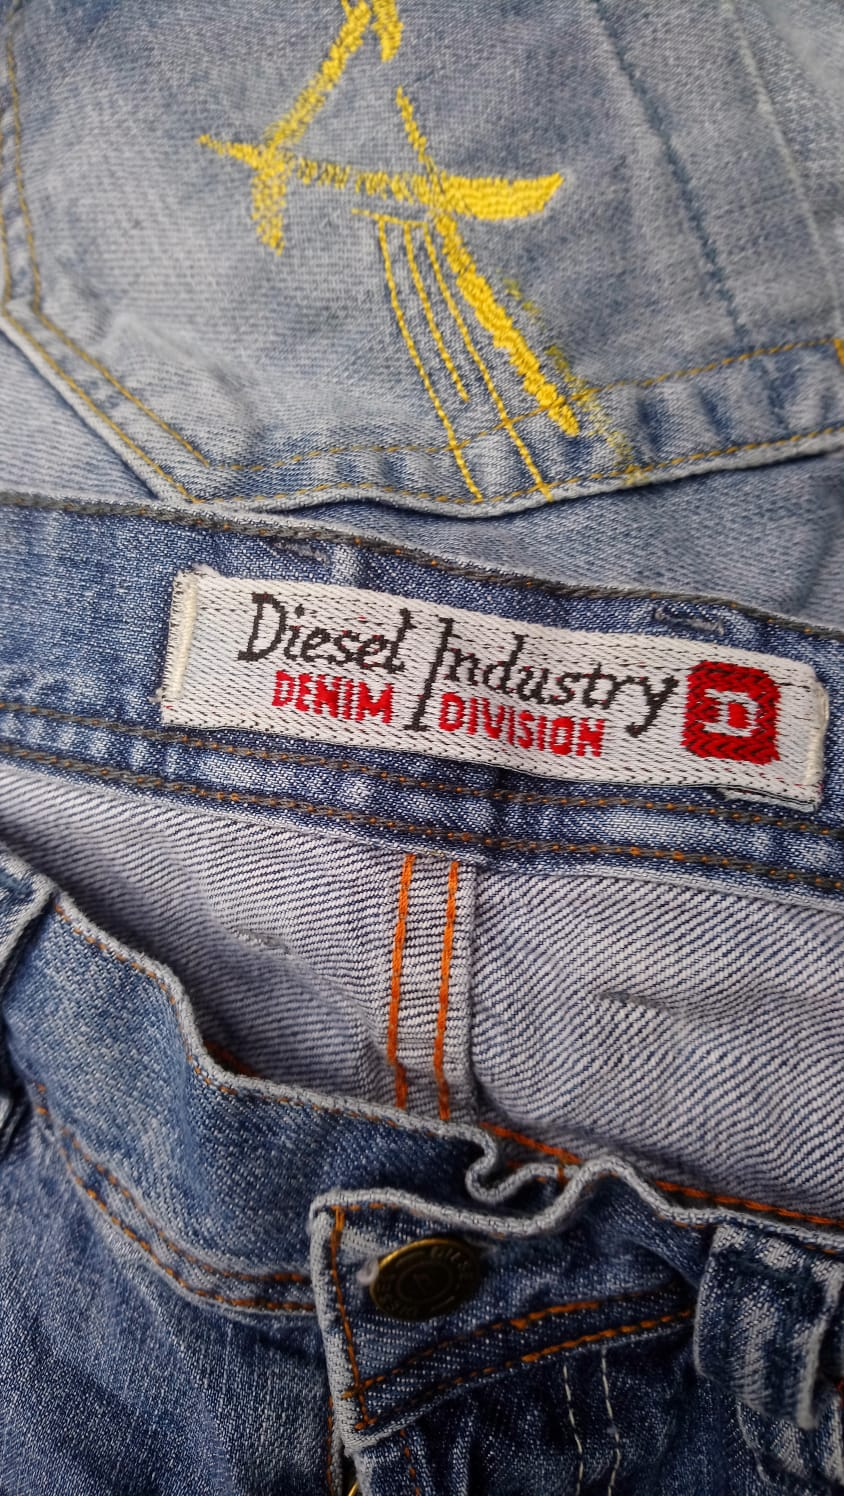 How Diesel fights counterfeiting